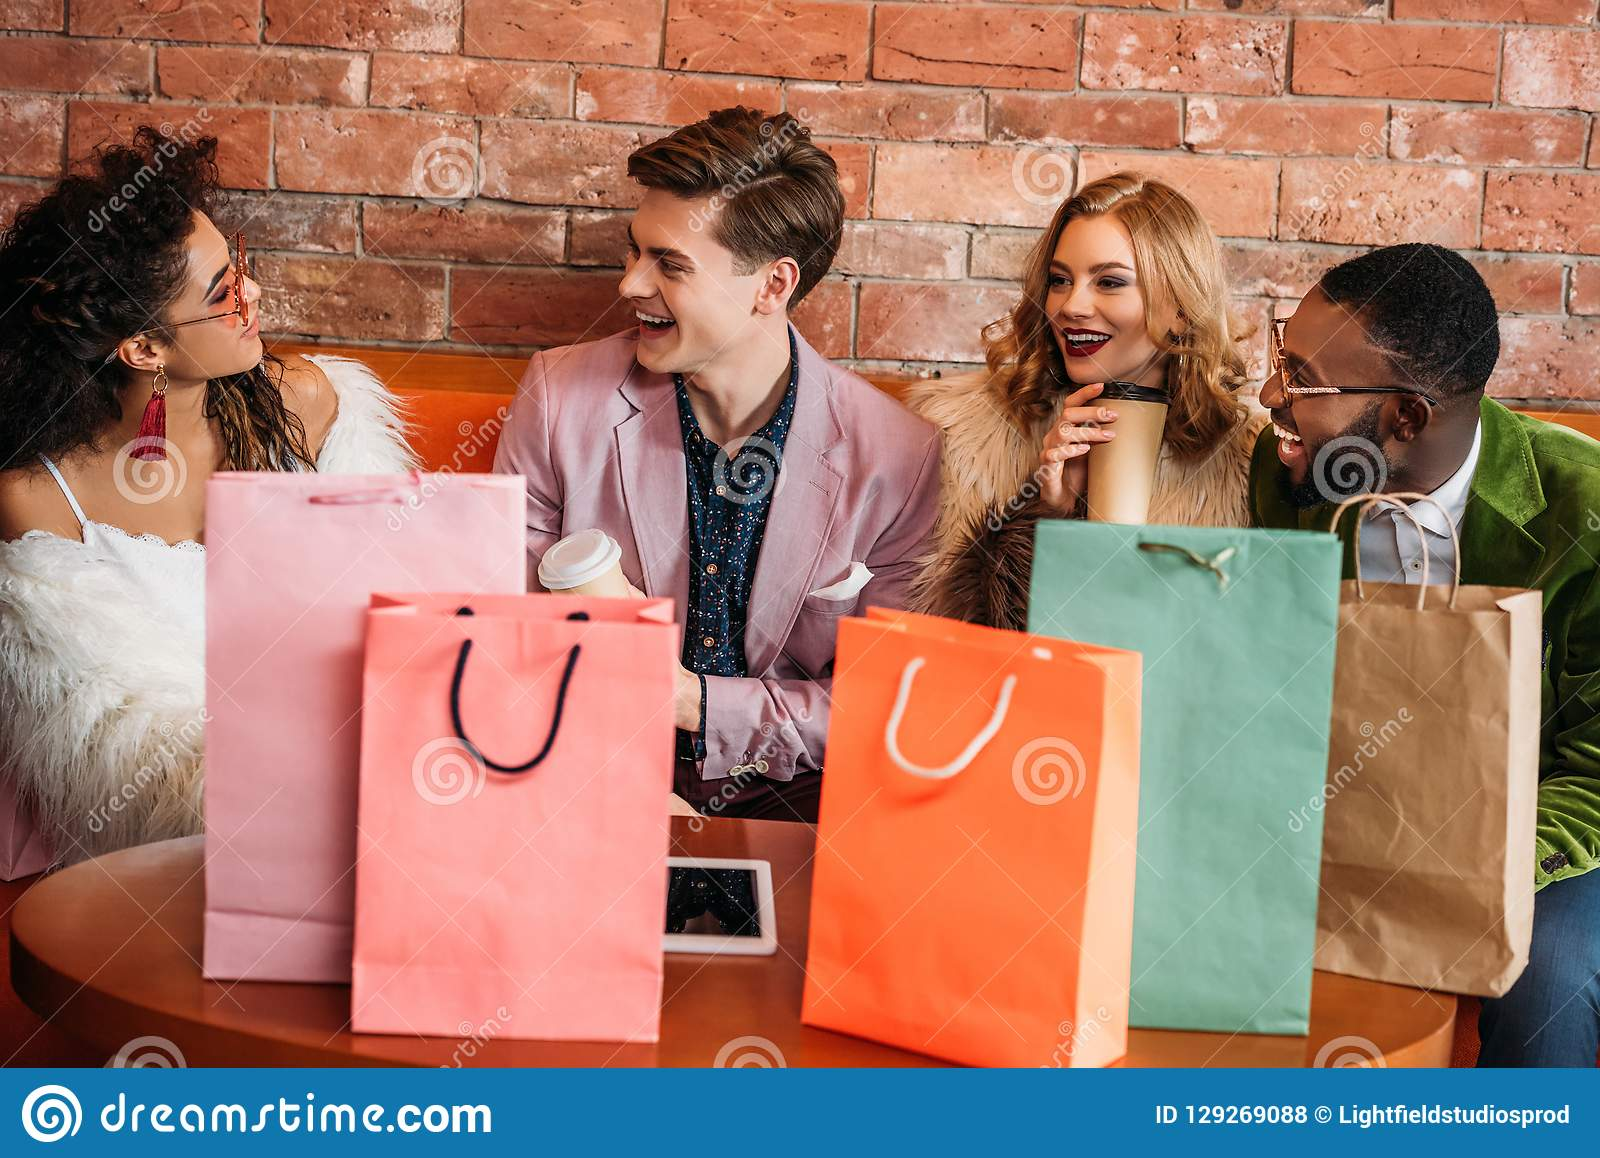 smiling fashionable multiethnic young people with shopping bags